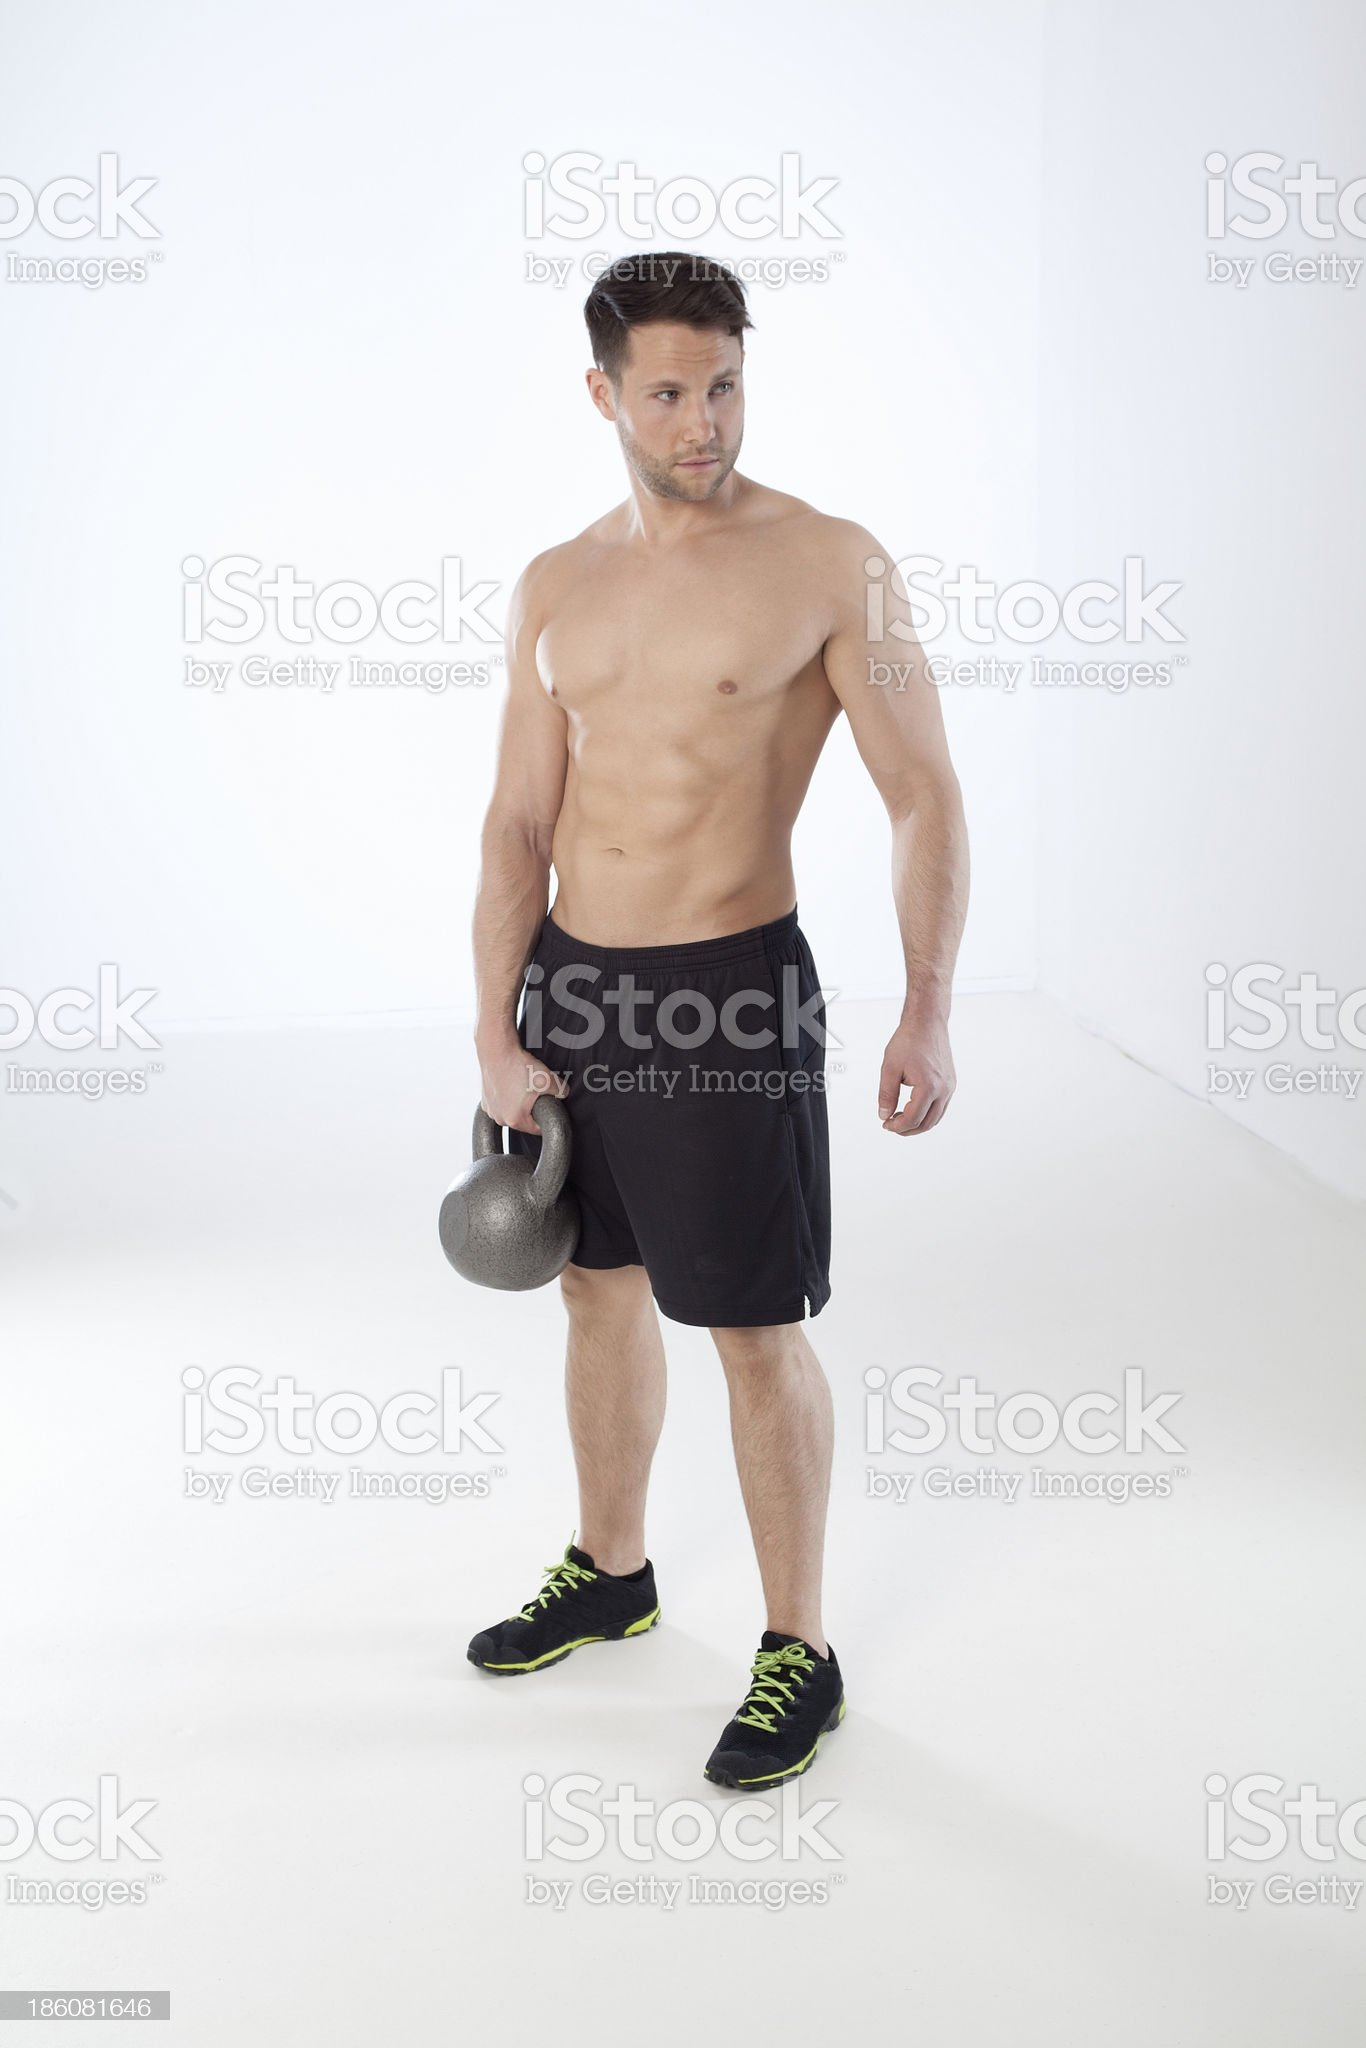 Athlete holding kettle bell royalty-free stock photo